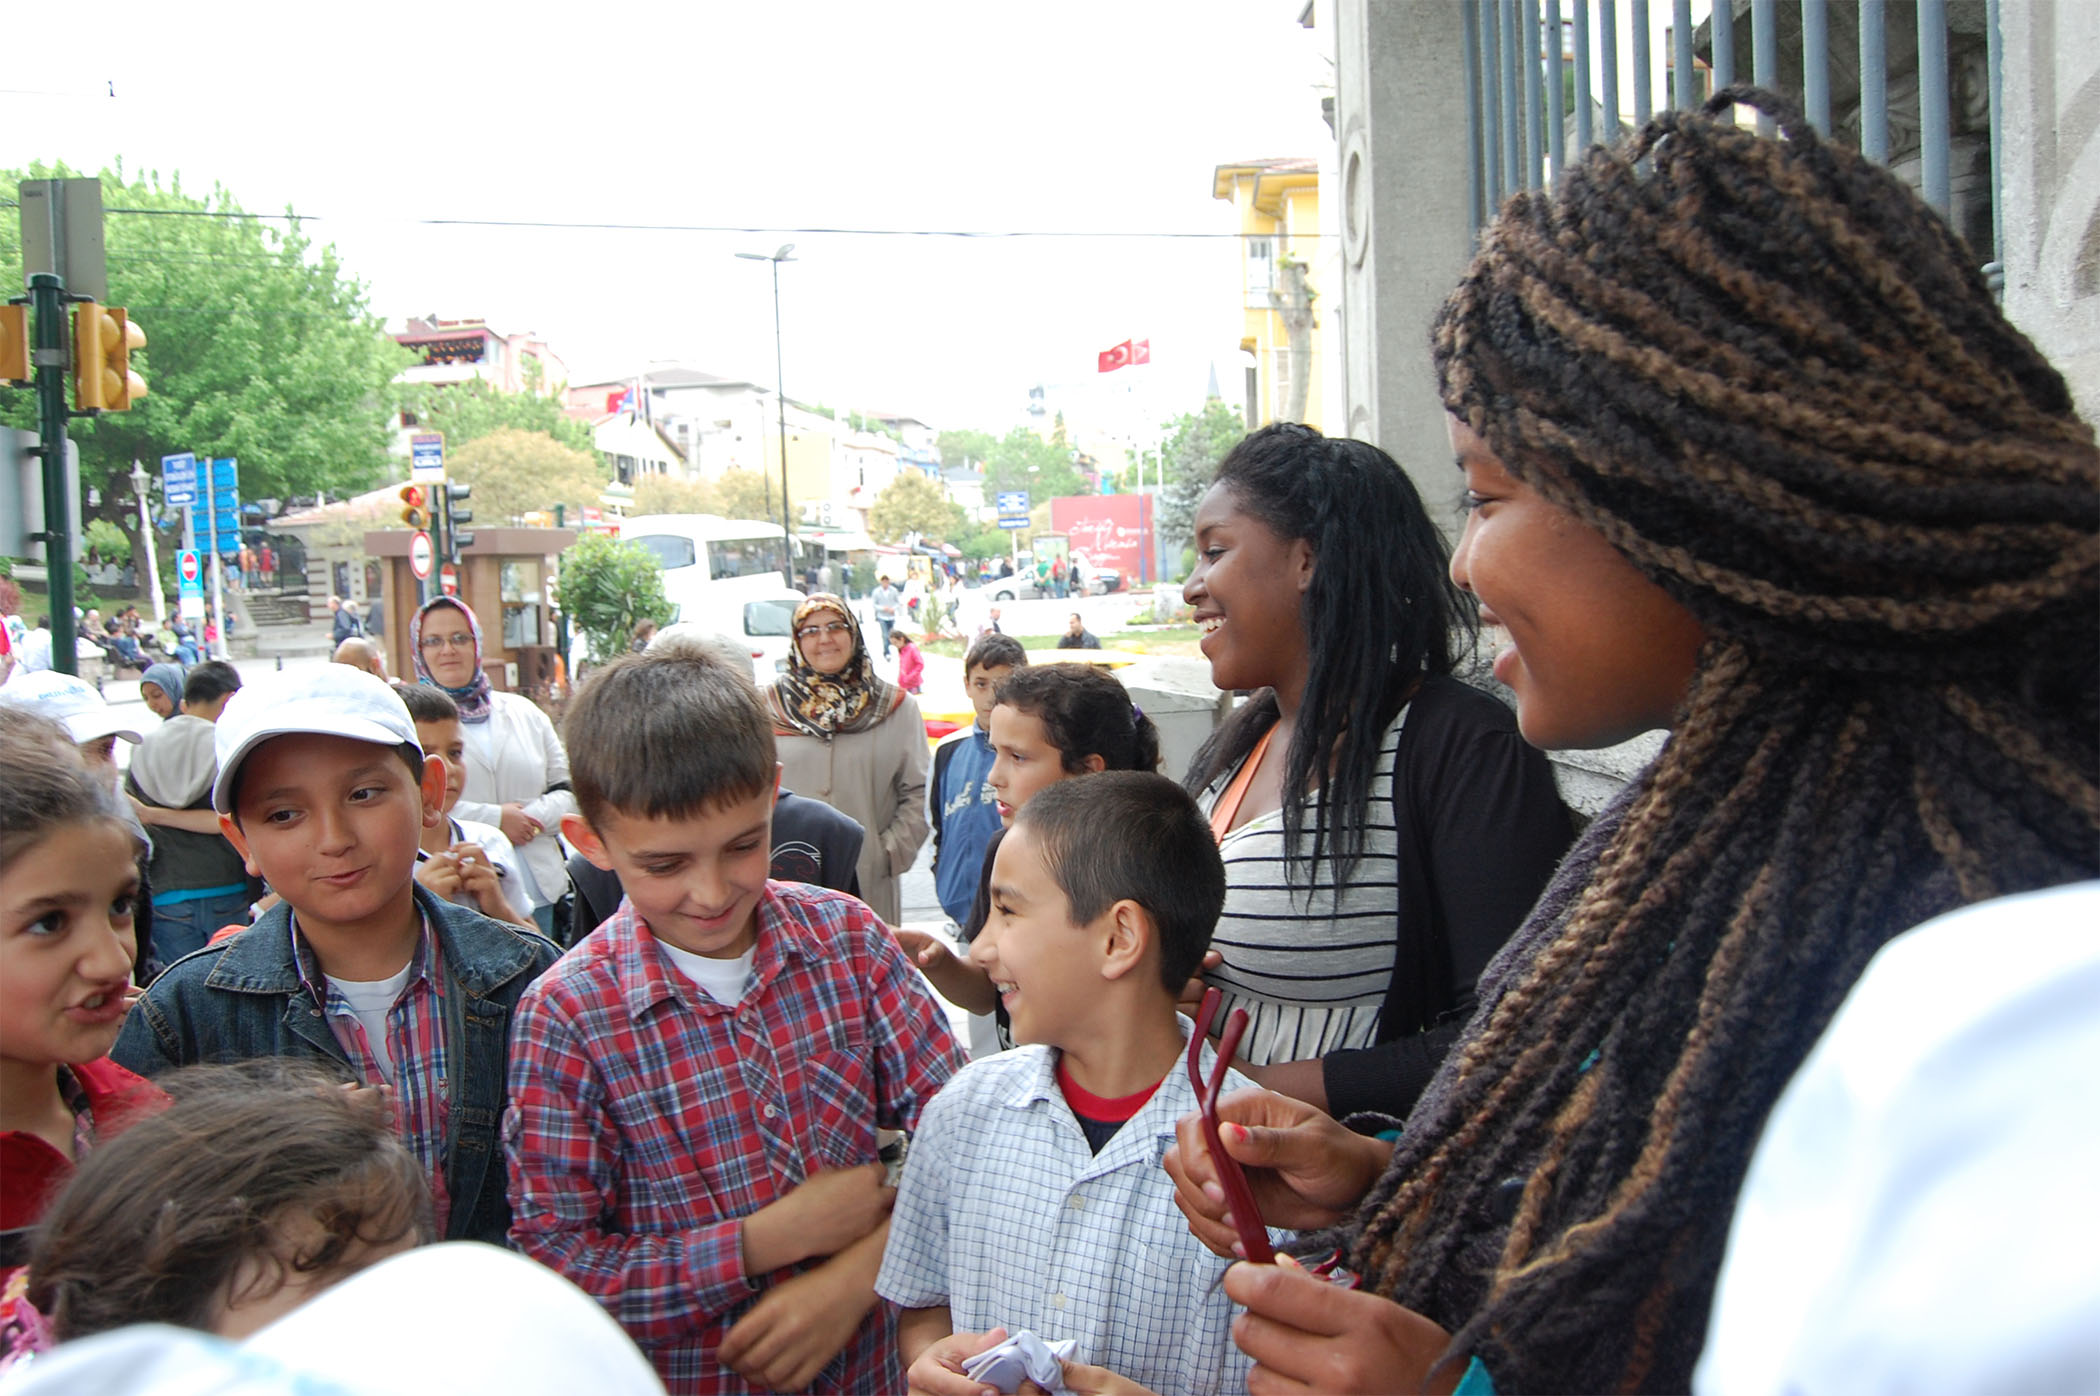 Yaminah and I in Istanbul greeting a crowd of curious kids who were fascinated by our skin and hair.